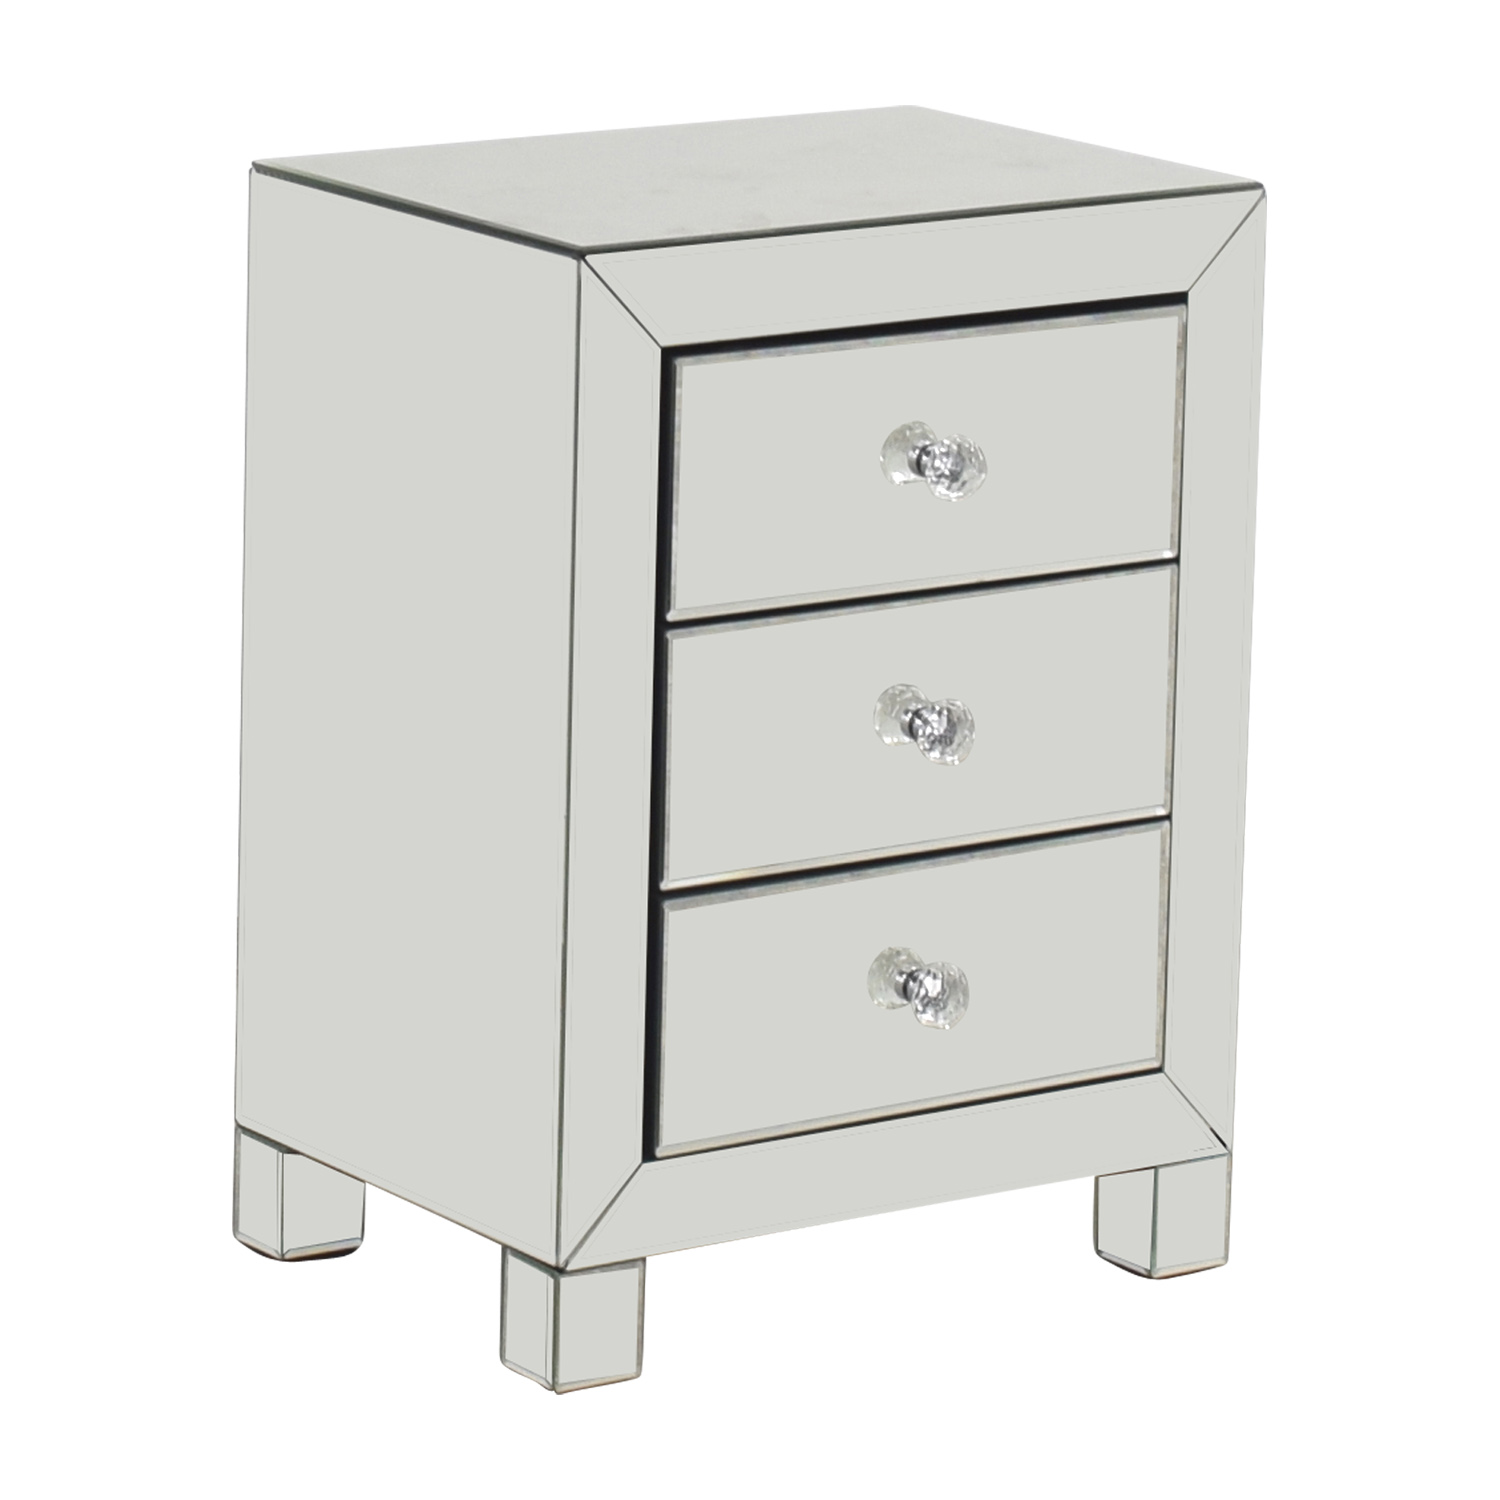 44 off target target three drawer mirrored nightstand 12426 | target three drawer mirrored nightstand second hand